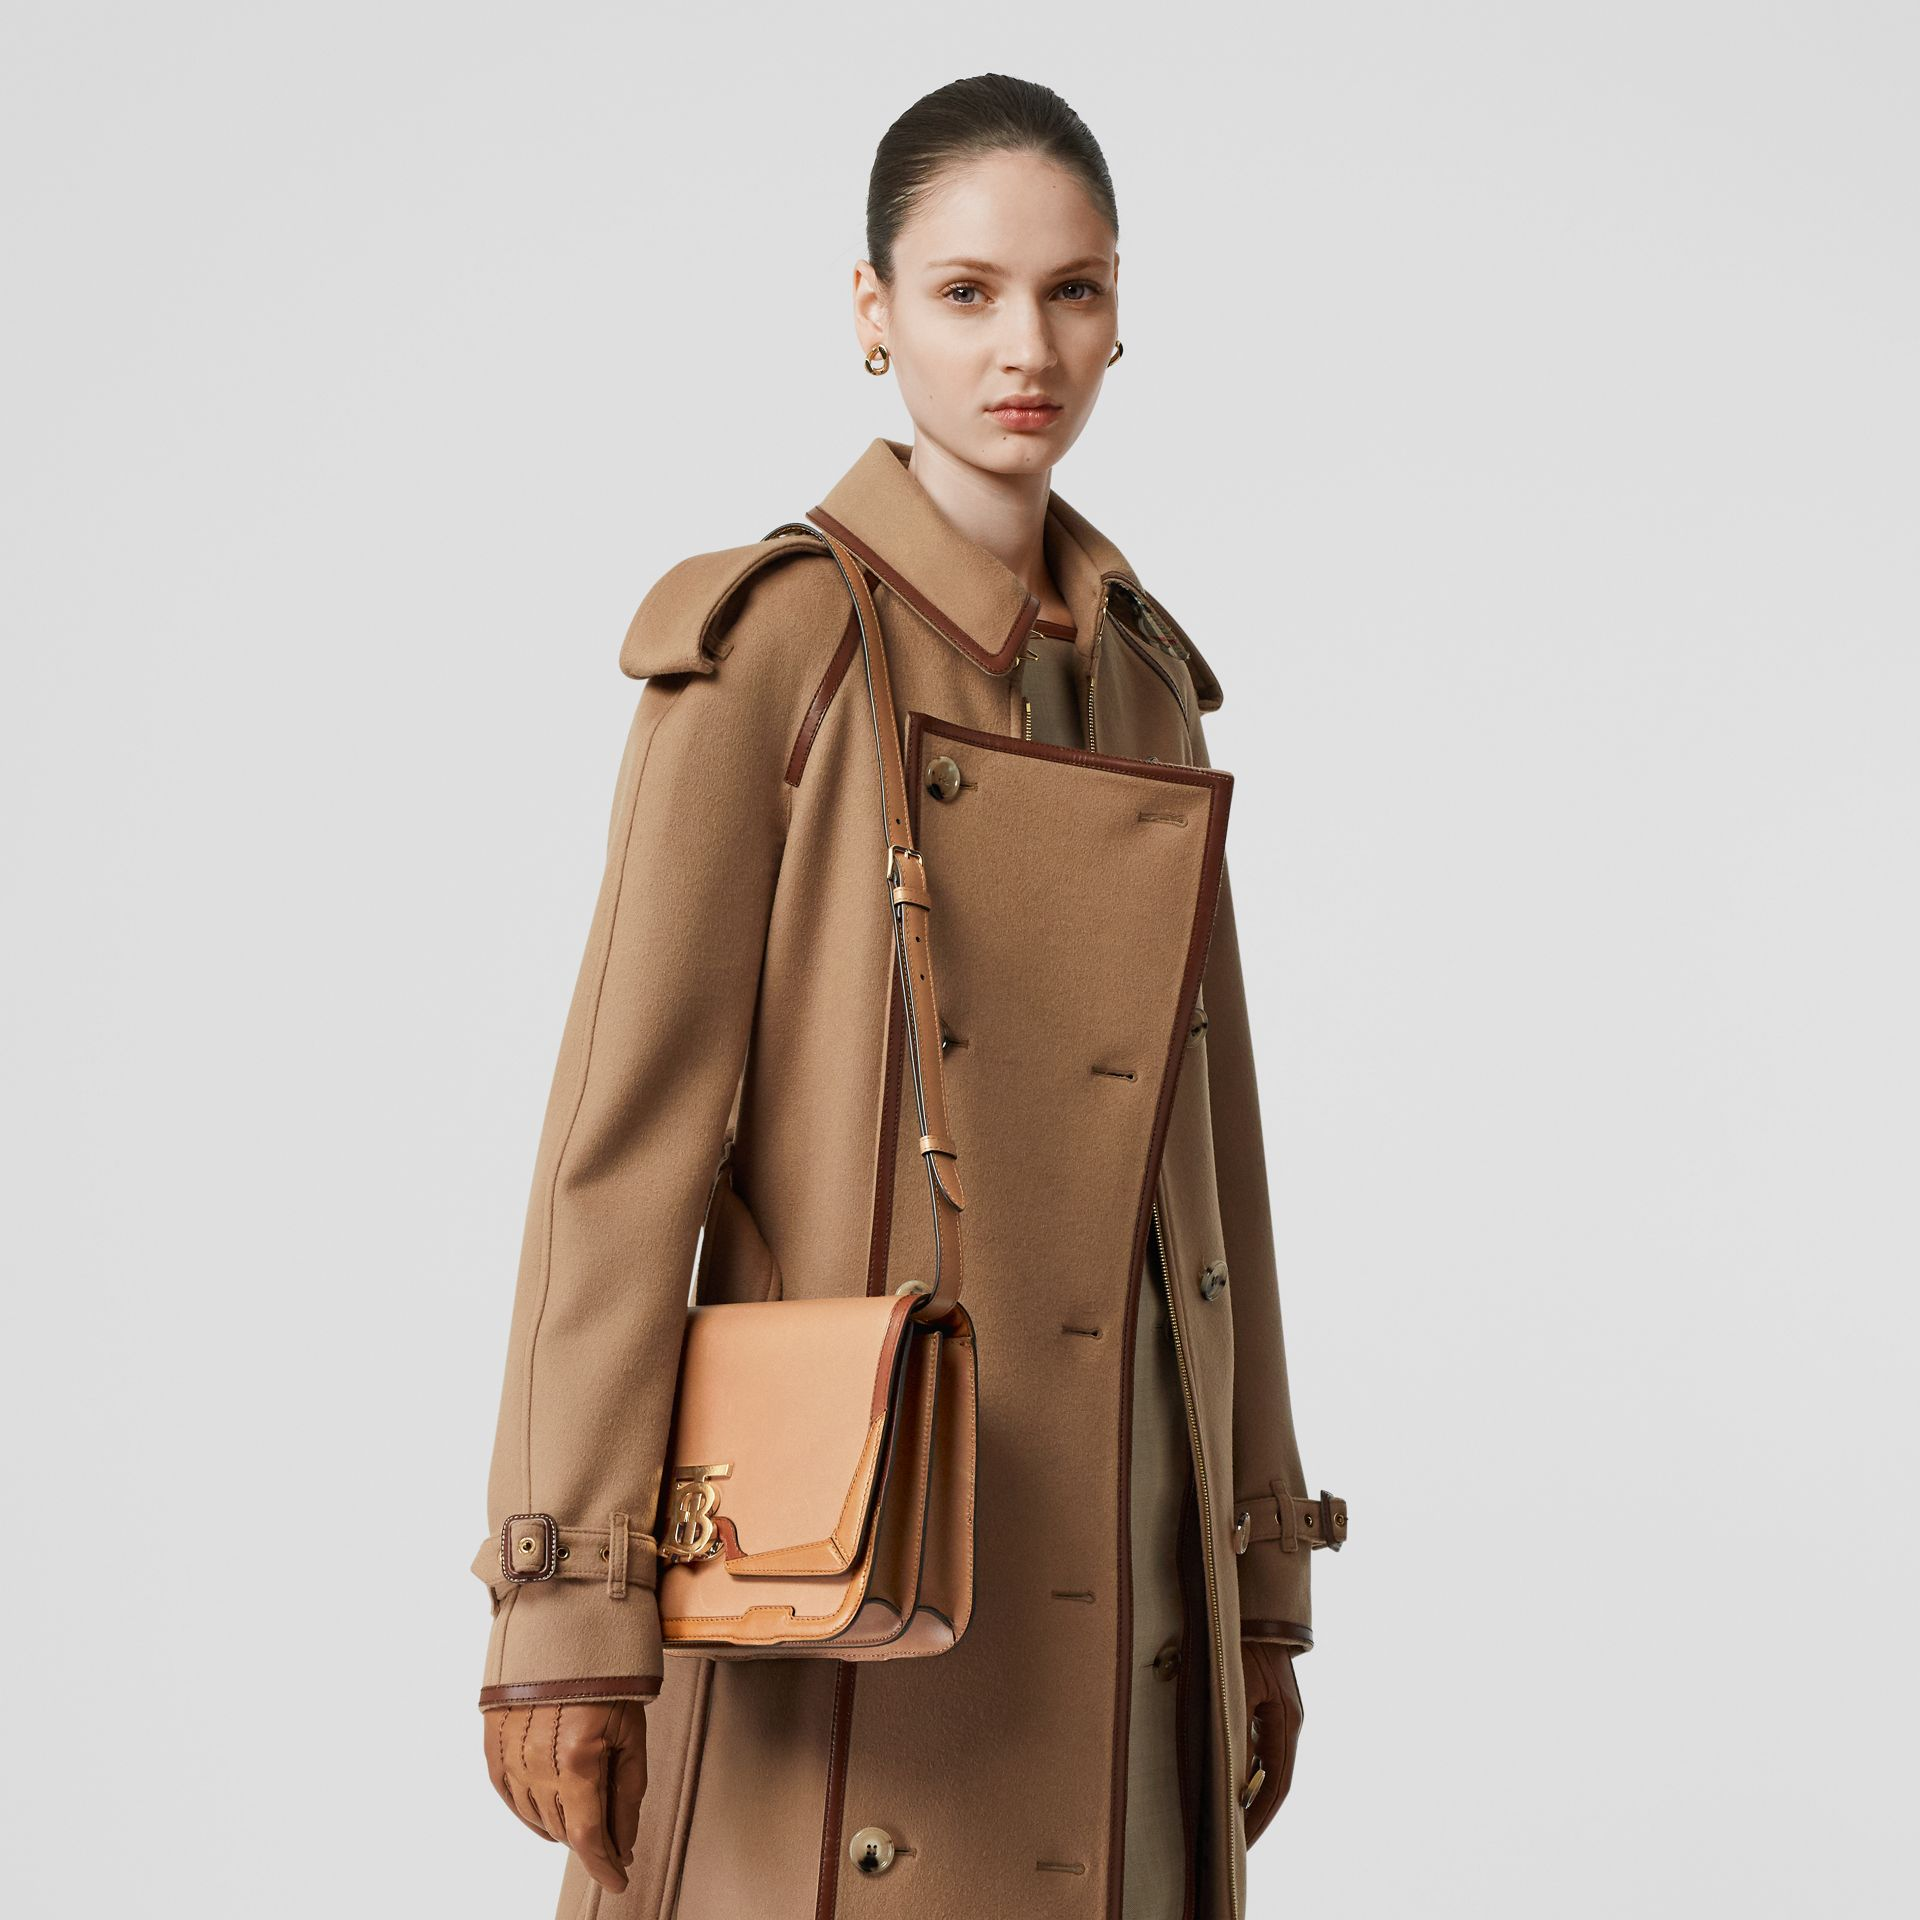 Medium Appliqué Leather TB Bag in Warm Camel - Women | Burberry - gallery image 1